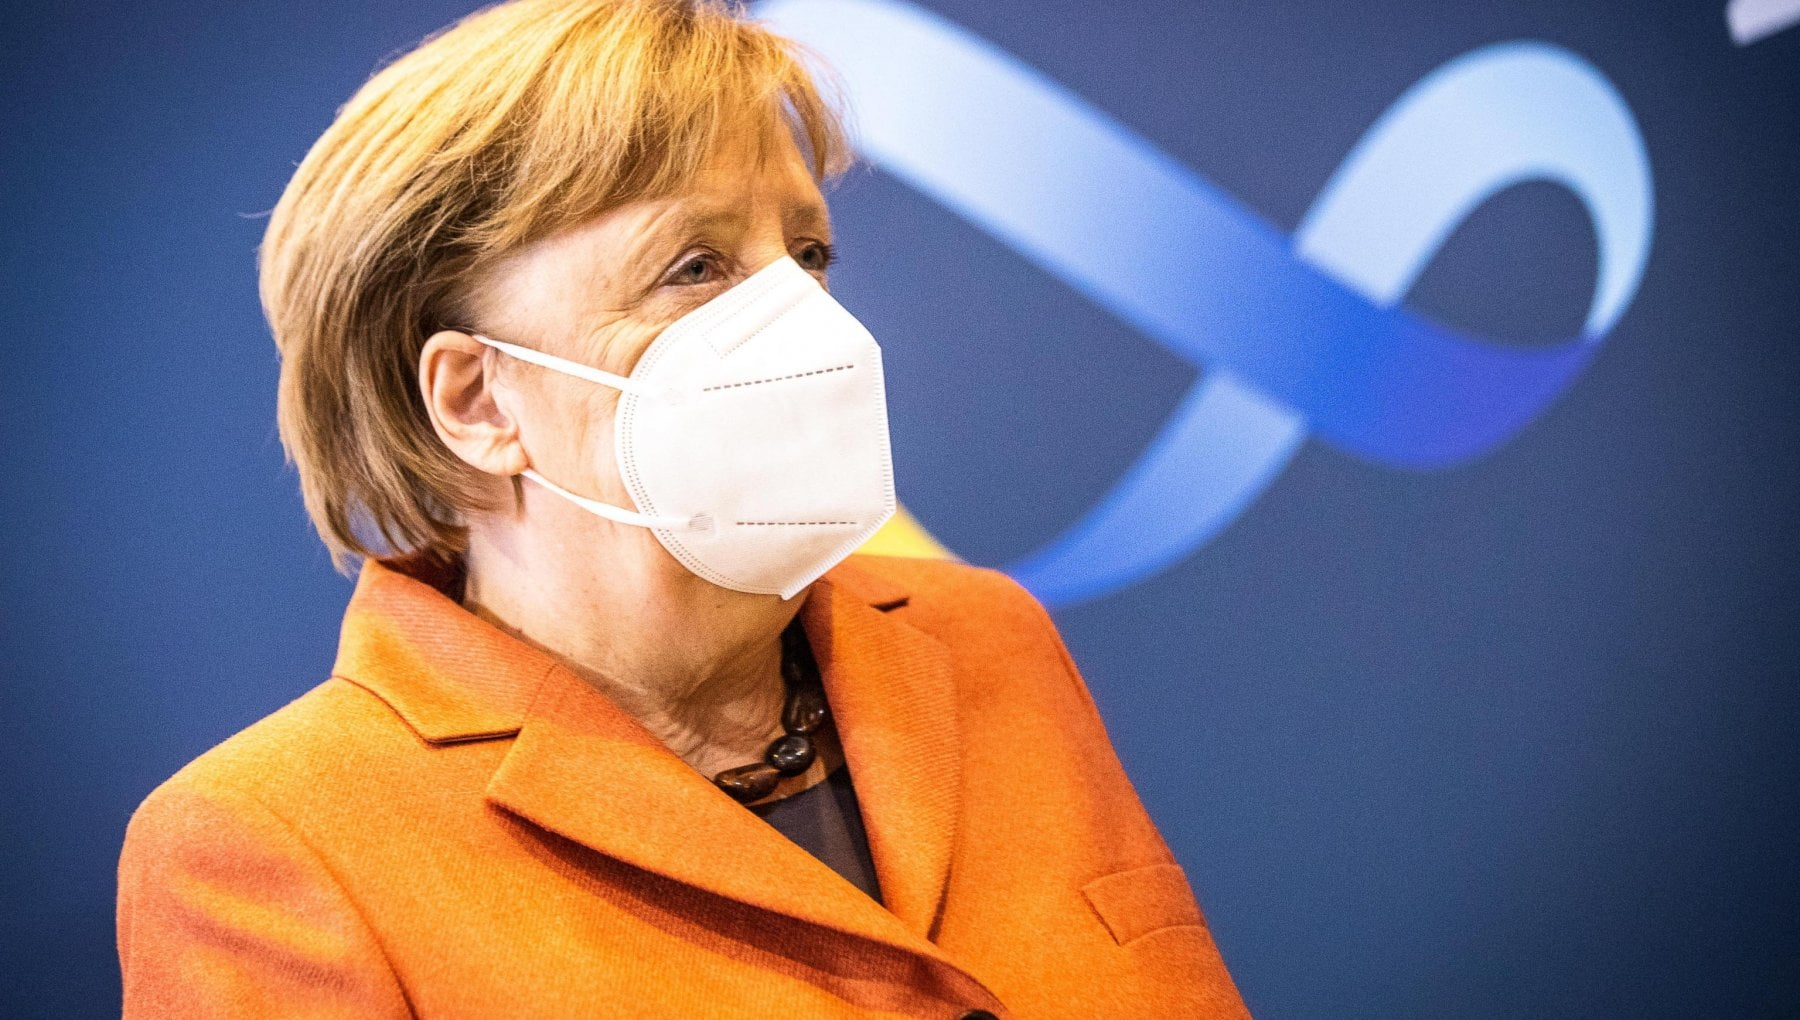 Coronavirus in Germania Merkel Lockdown duro ancora per due mesi